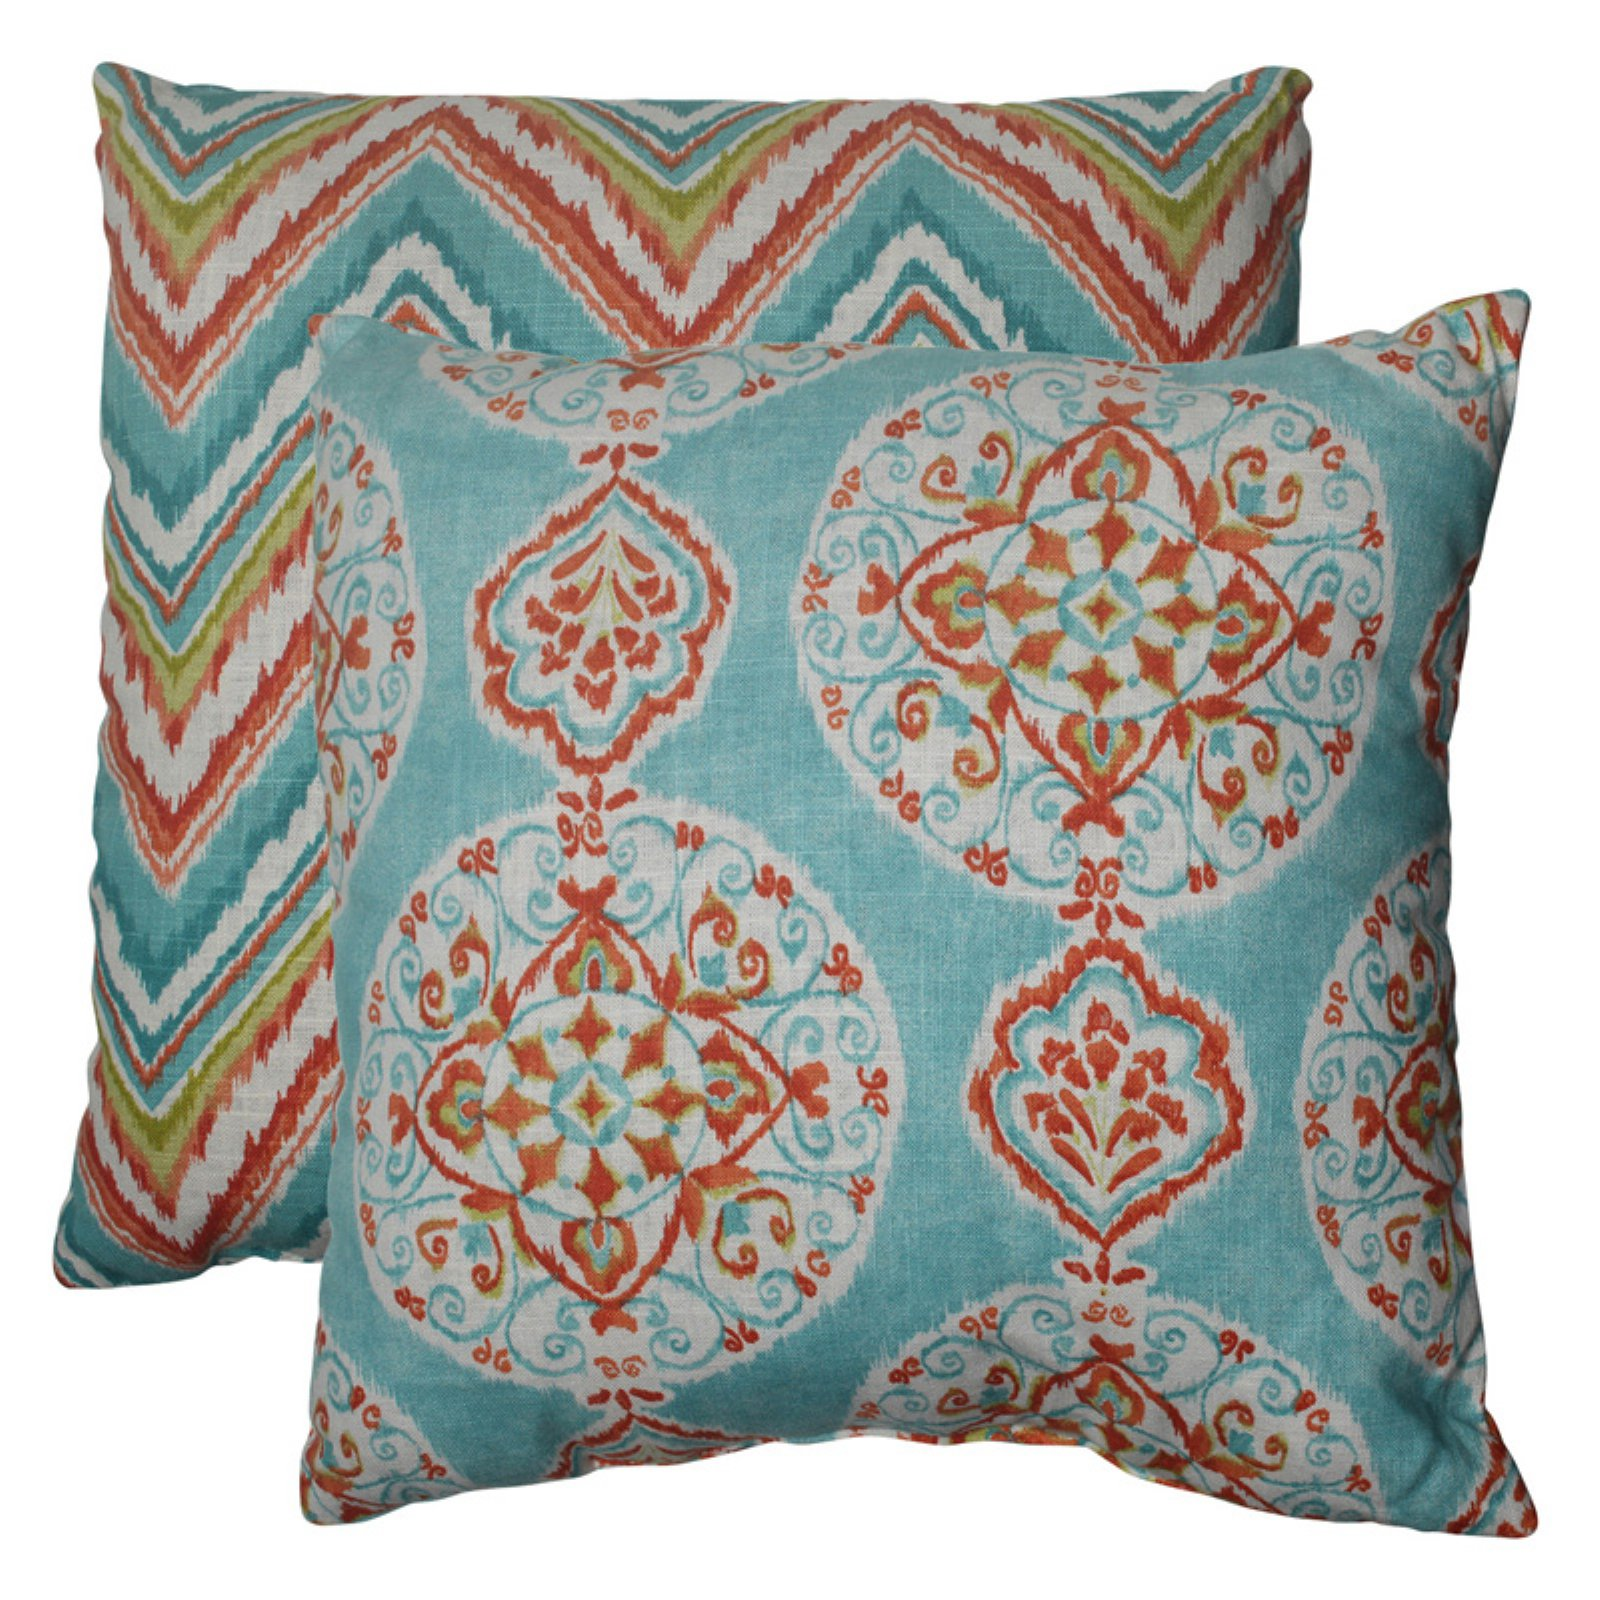 Pillow Perfect Mirage & Chevron Throw Pillows - Set of 2